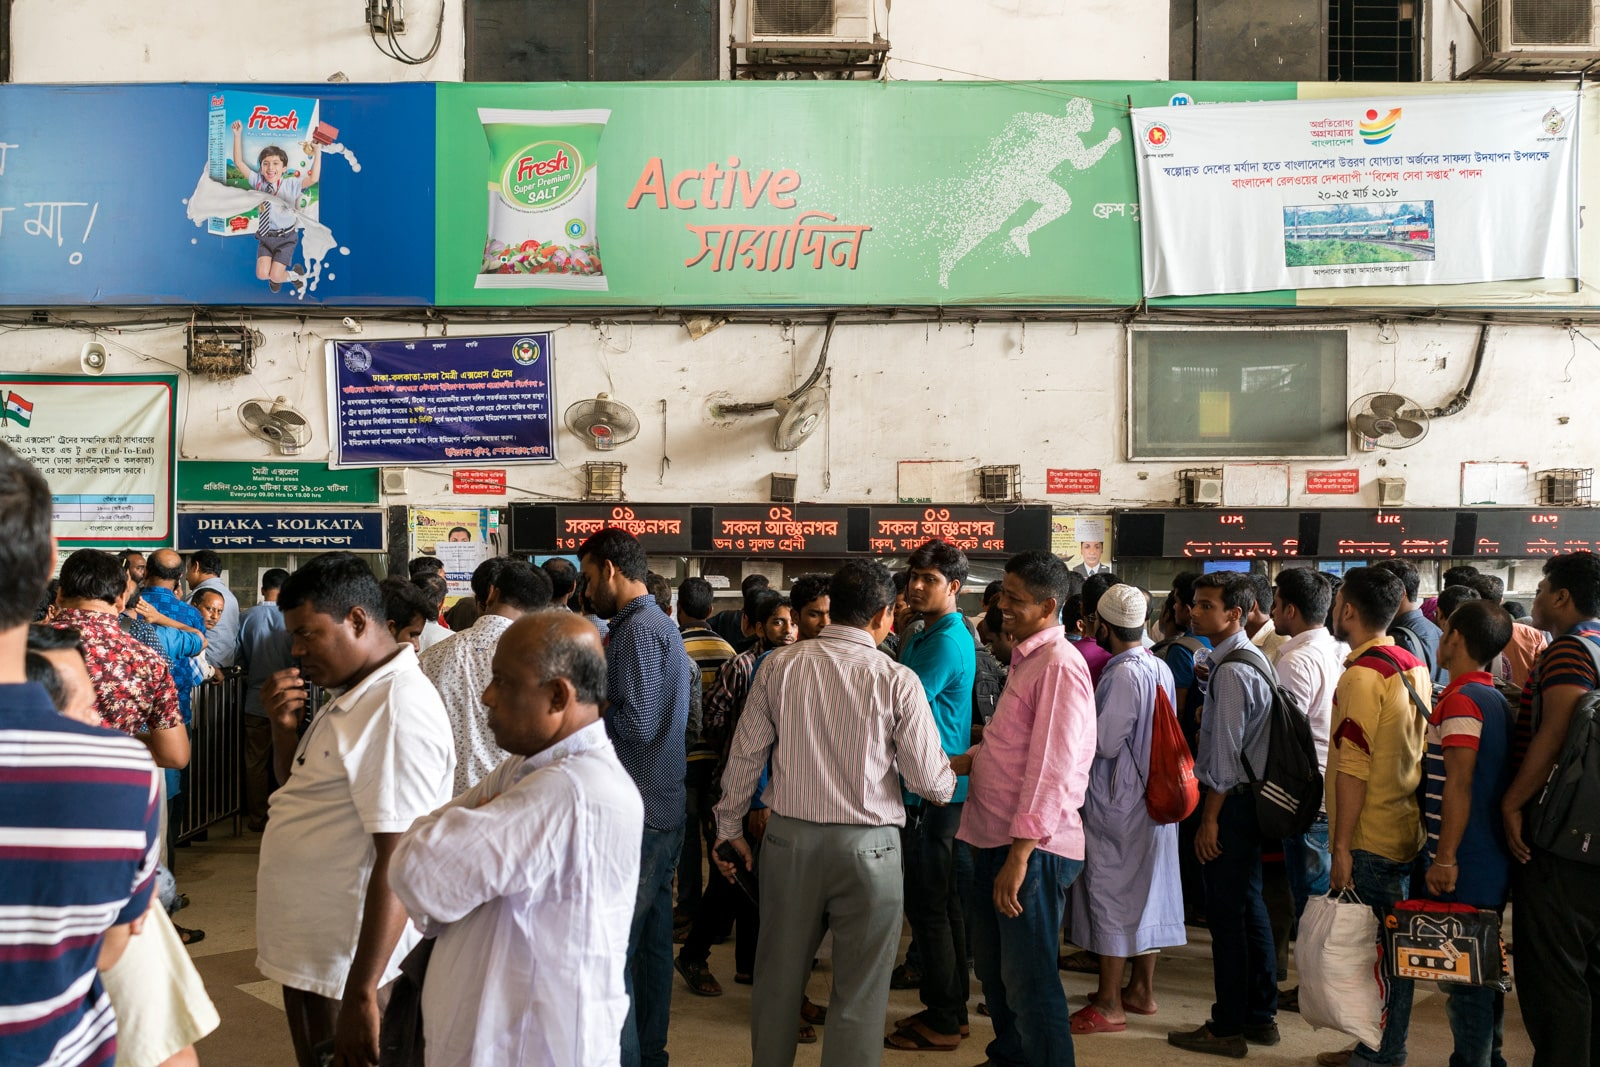 How to take the train from Bangladesh to India - Ticketing windows at Dhaka Kamalapur railway station - Lost With Purpose travel blog